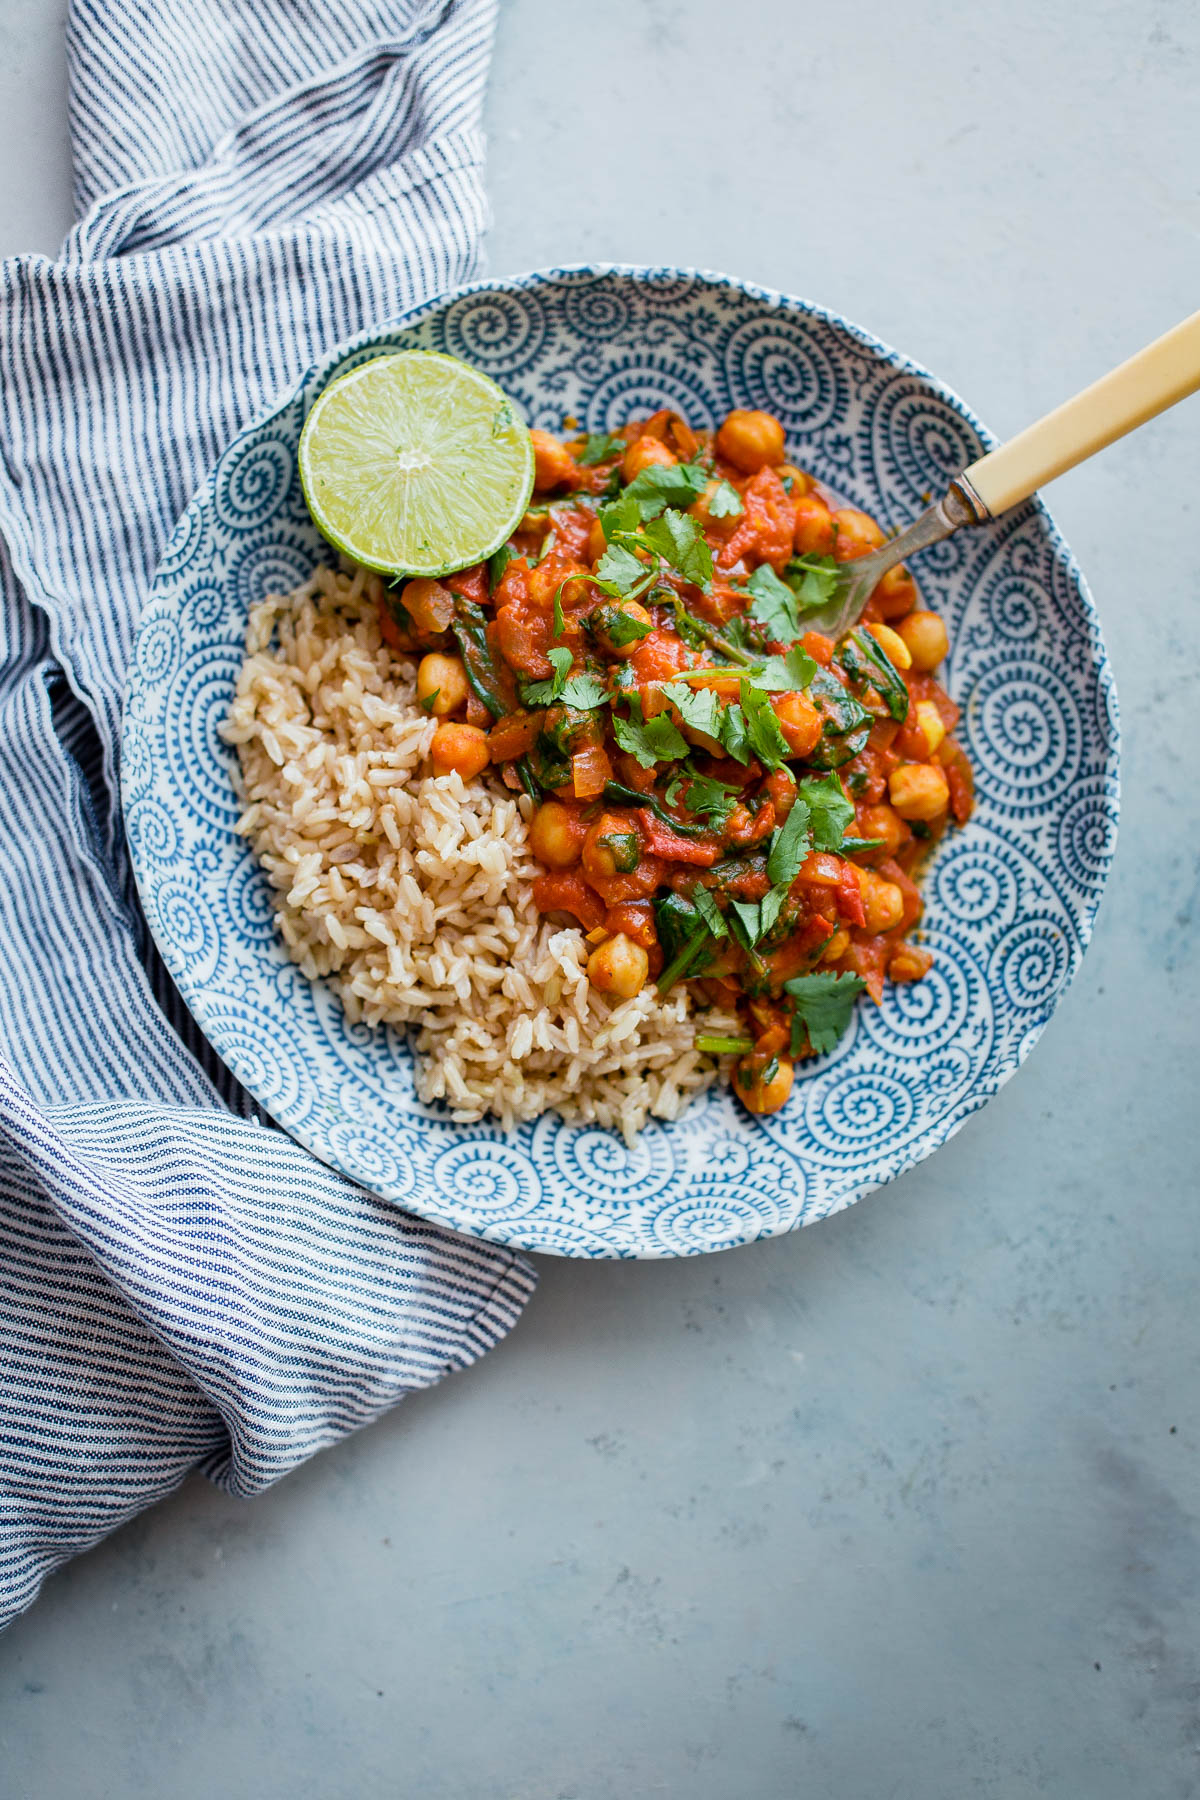 EASY Everyday Chickpea Curry- this VEGETARIAN curry comes together in less than 30 minutes!